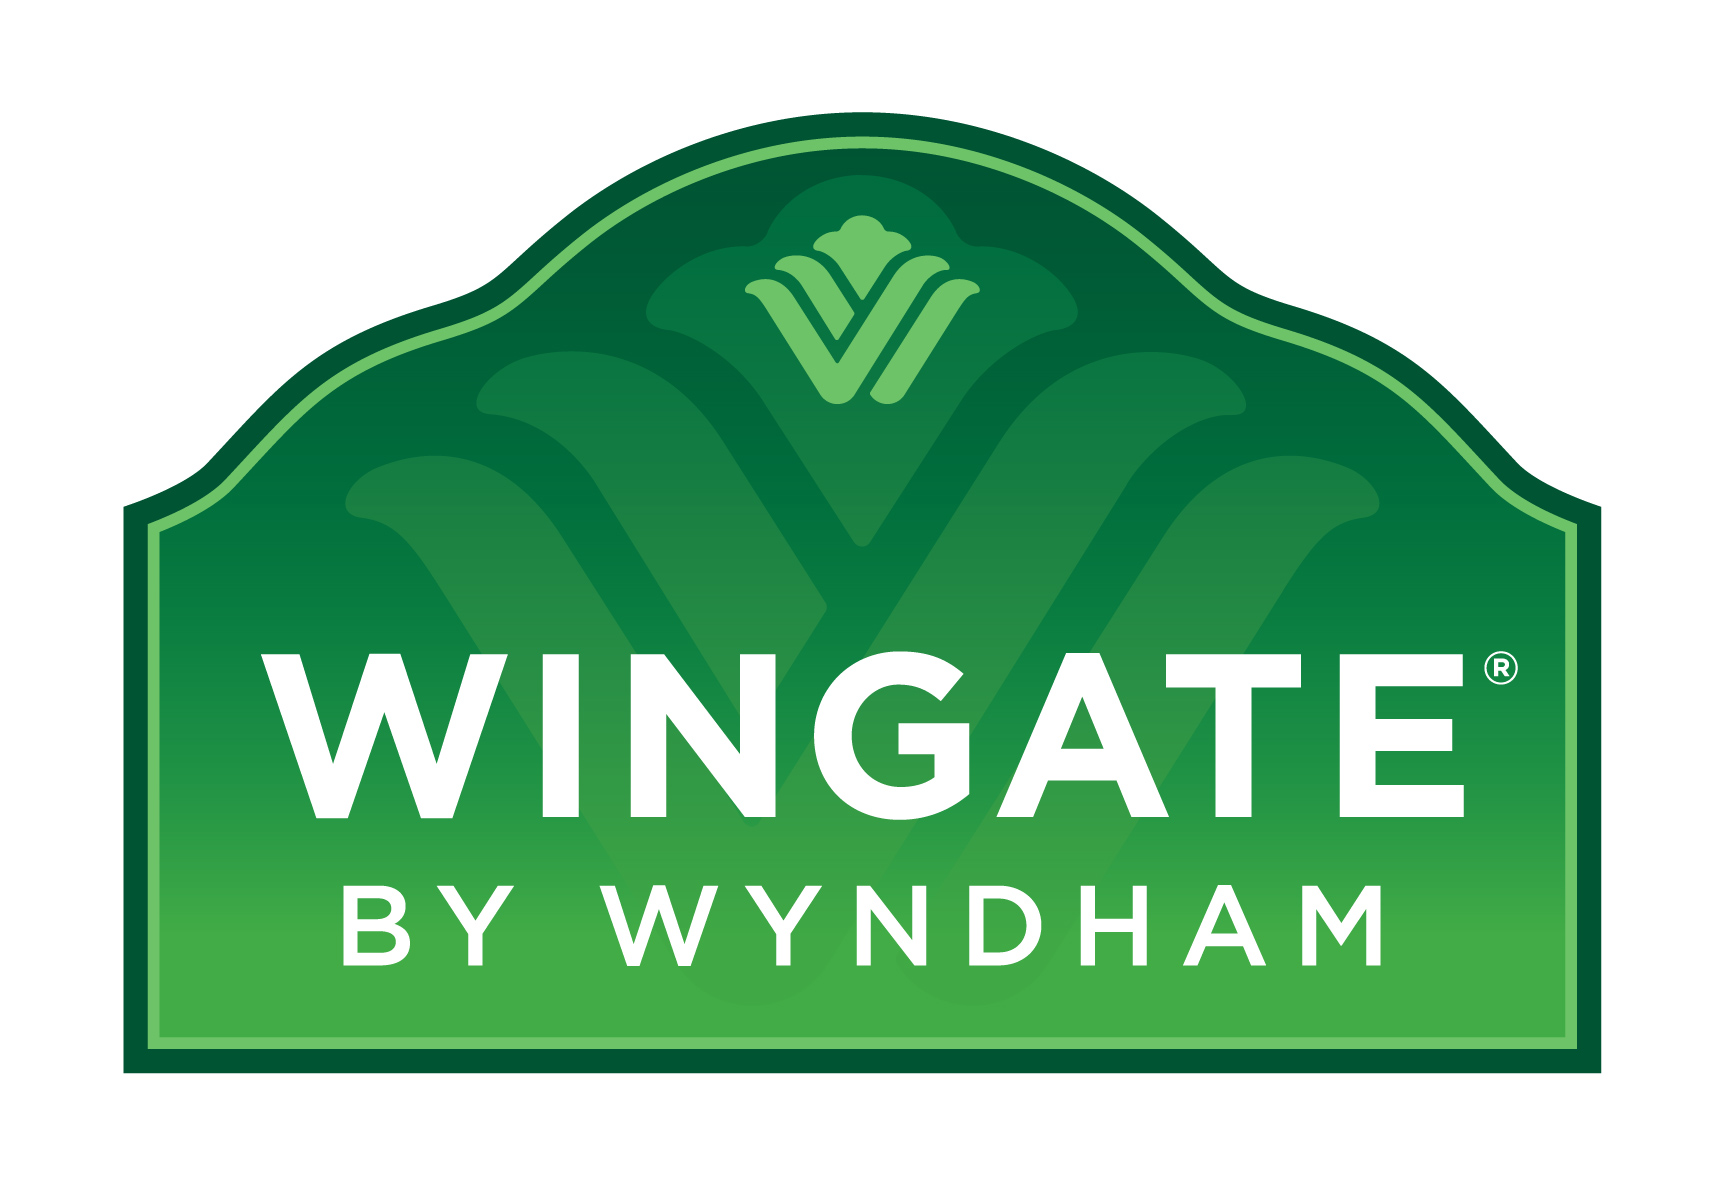 Wingate by wyndham logopedia fandom powered by wikia for The wingate